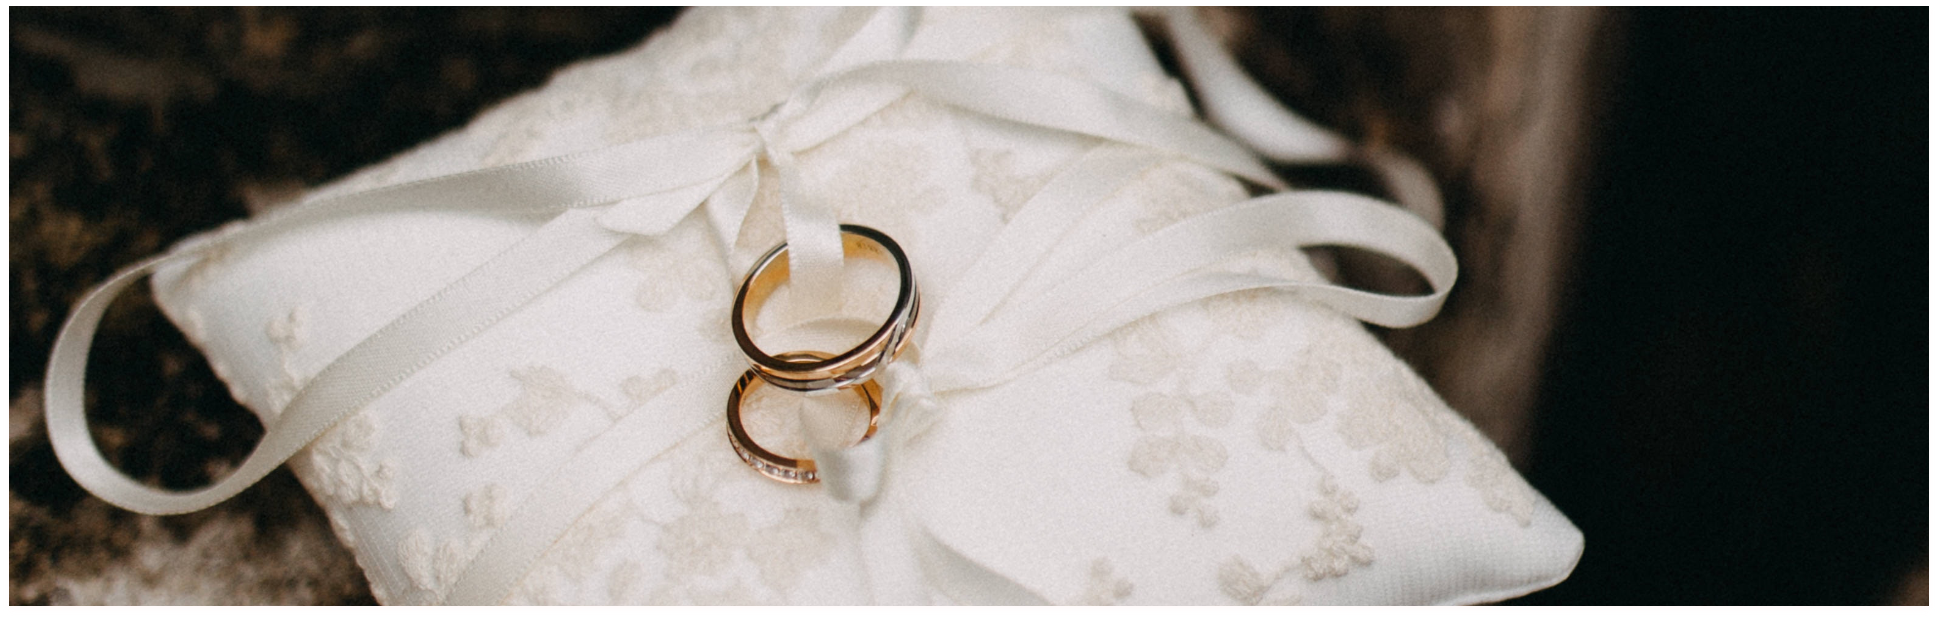 wedding rings with pillows